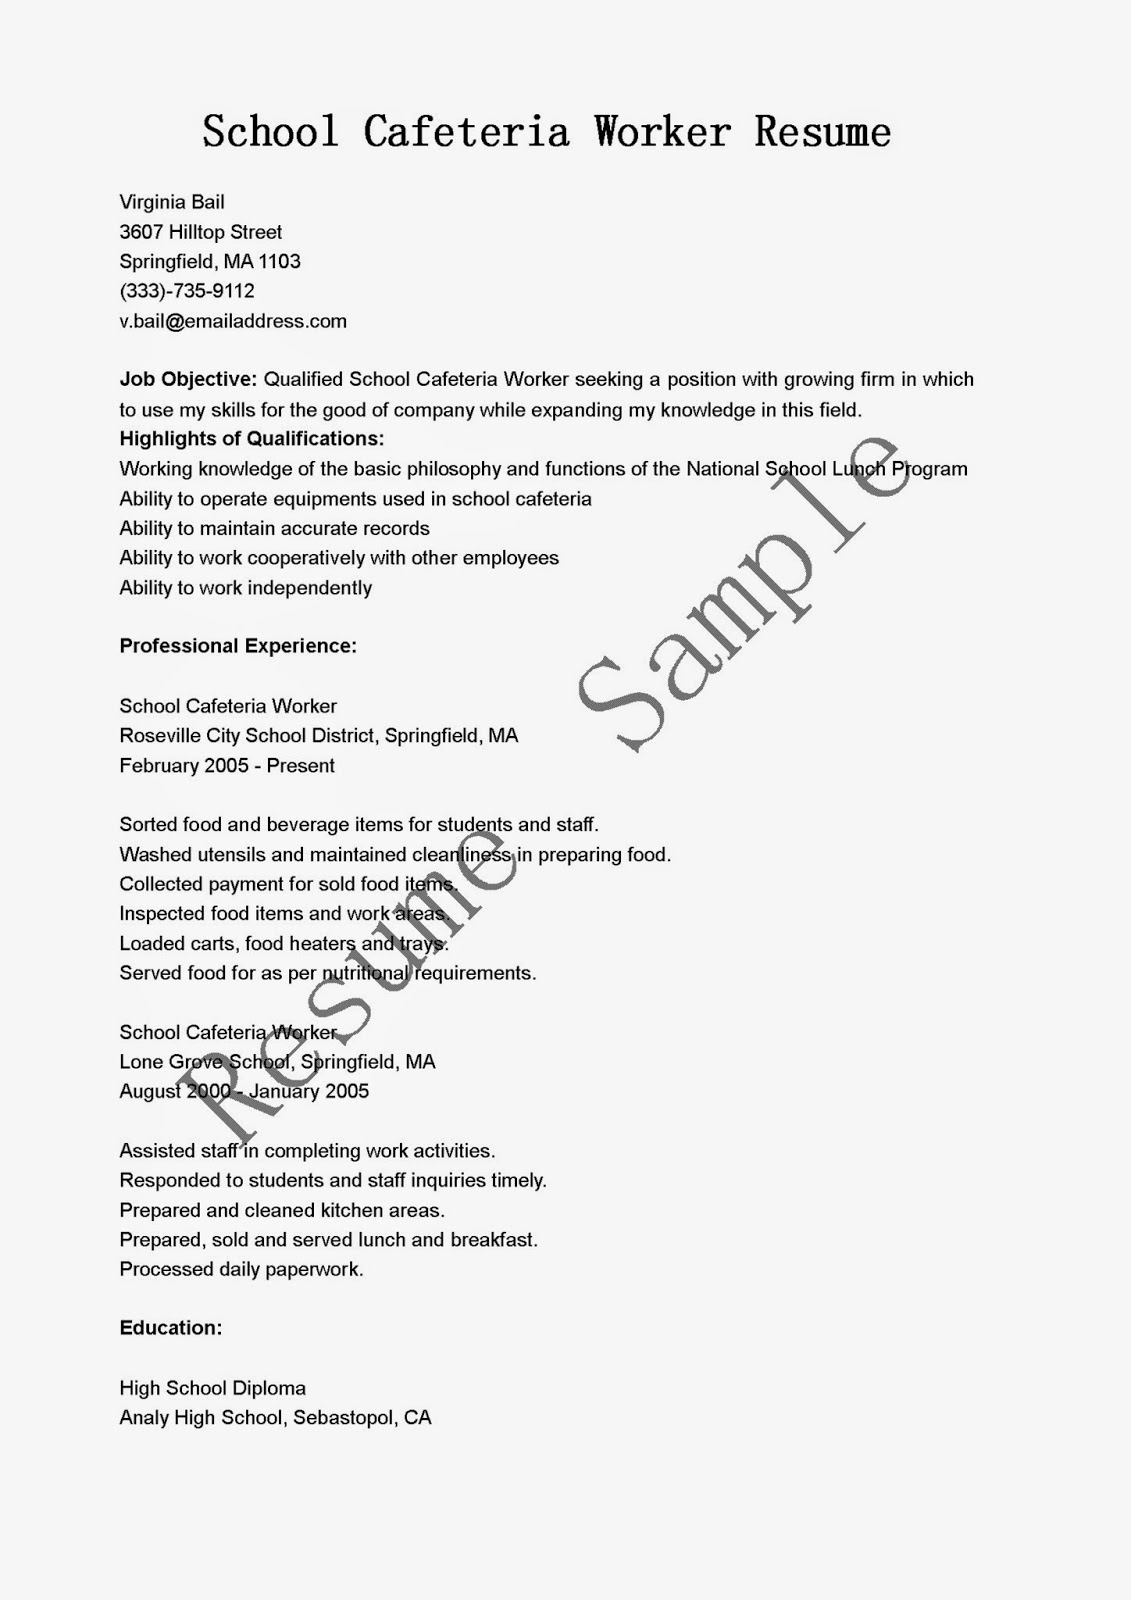 Resume Samples With High School Diploma – High School Diploma on Resume Examples